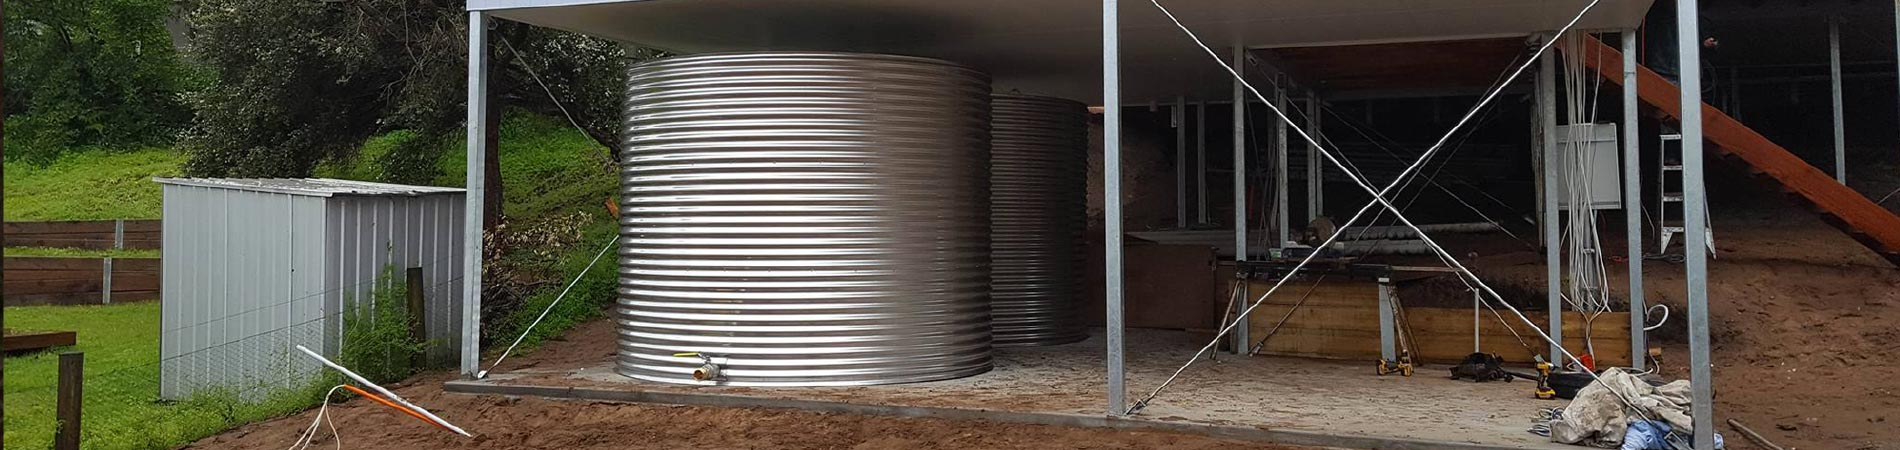 Grade 304 stainless steel water tanks